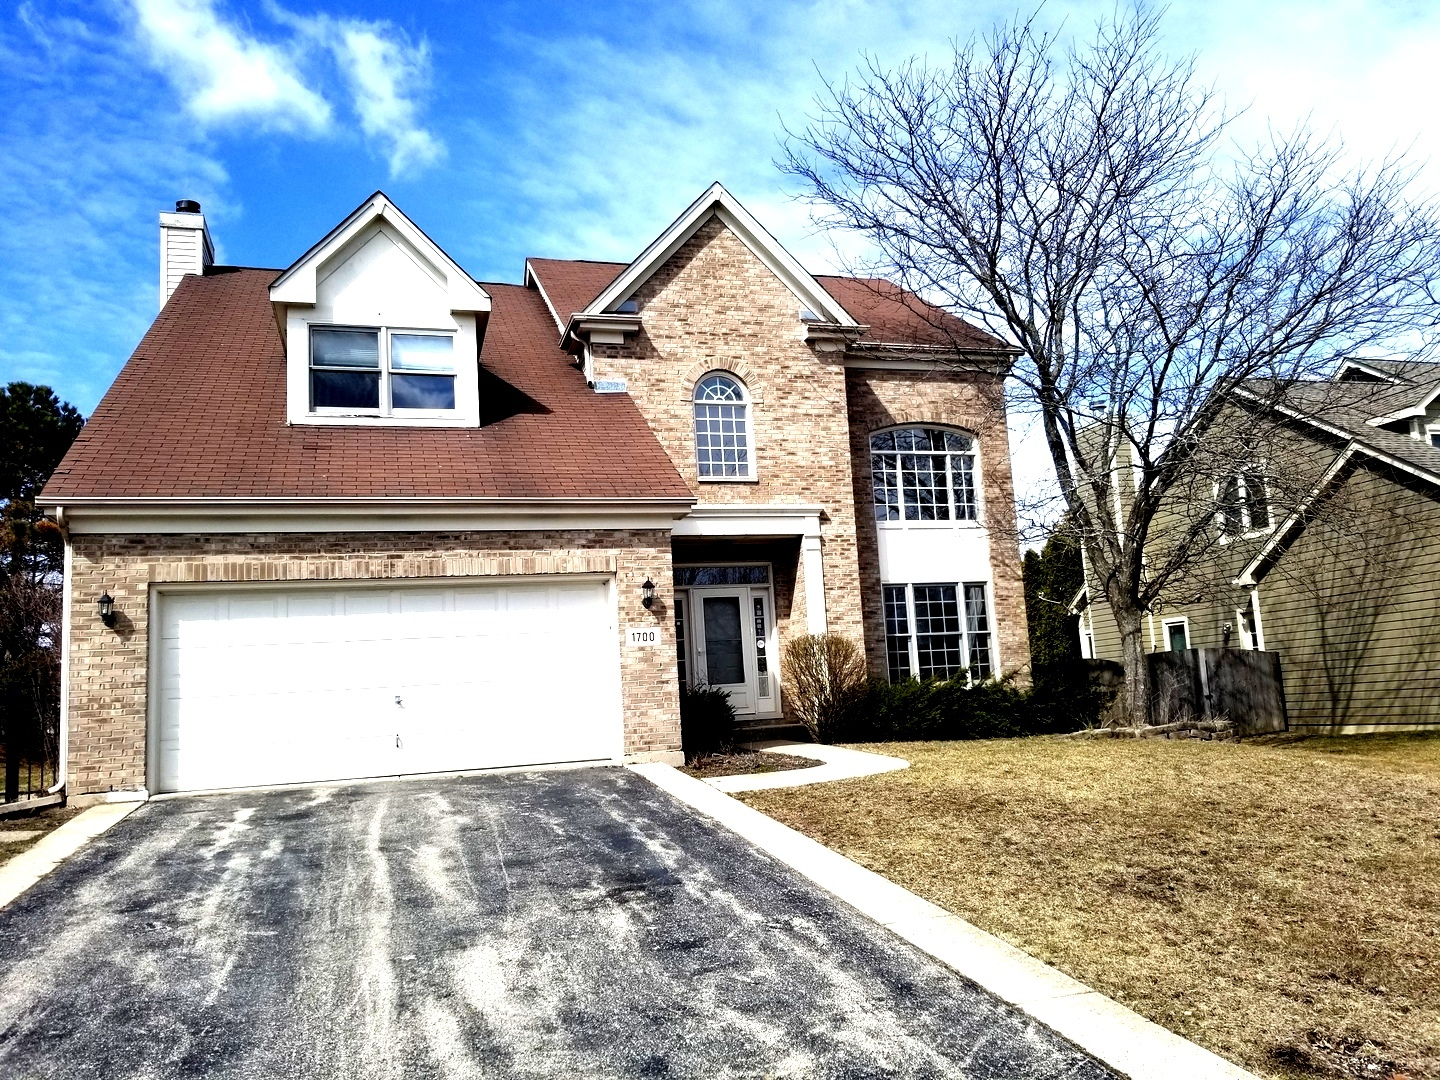 1700 Ambria Court   MUNDELEIN Illinois 60060